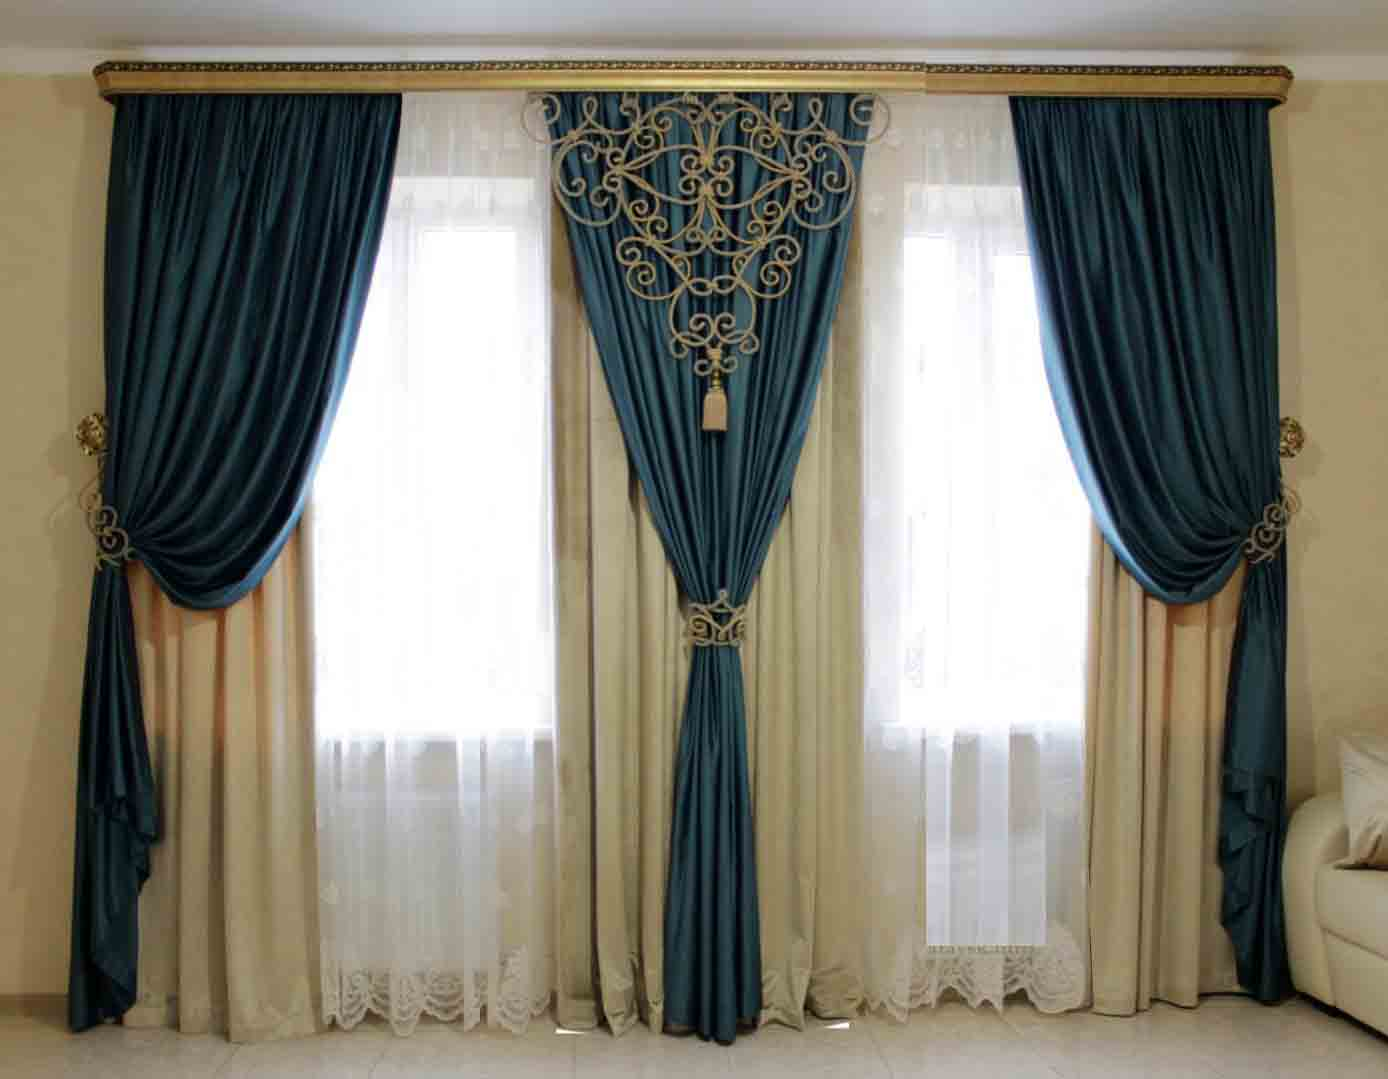 top 50 curtain design ideas for bedroom modern interior designs 2019. Black Bedroom Furniture Sets. Home Design Ideas